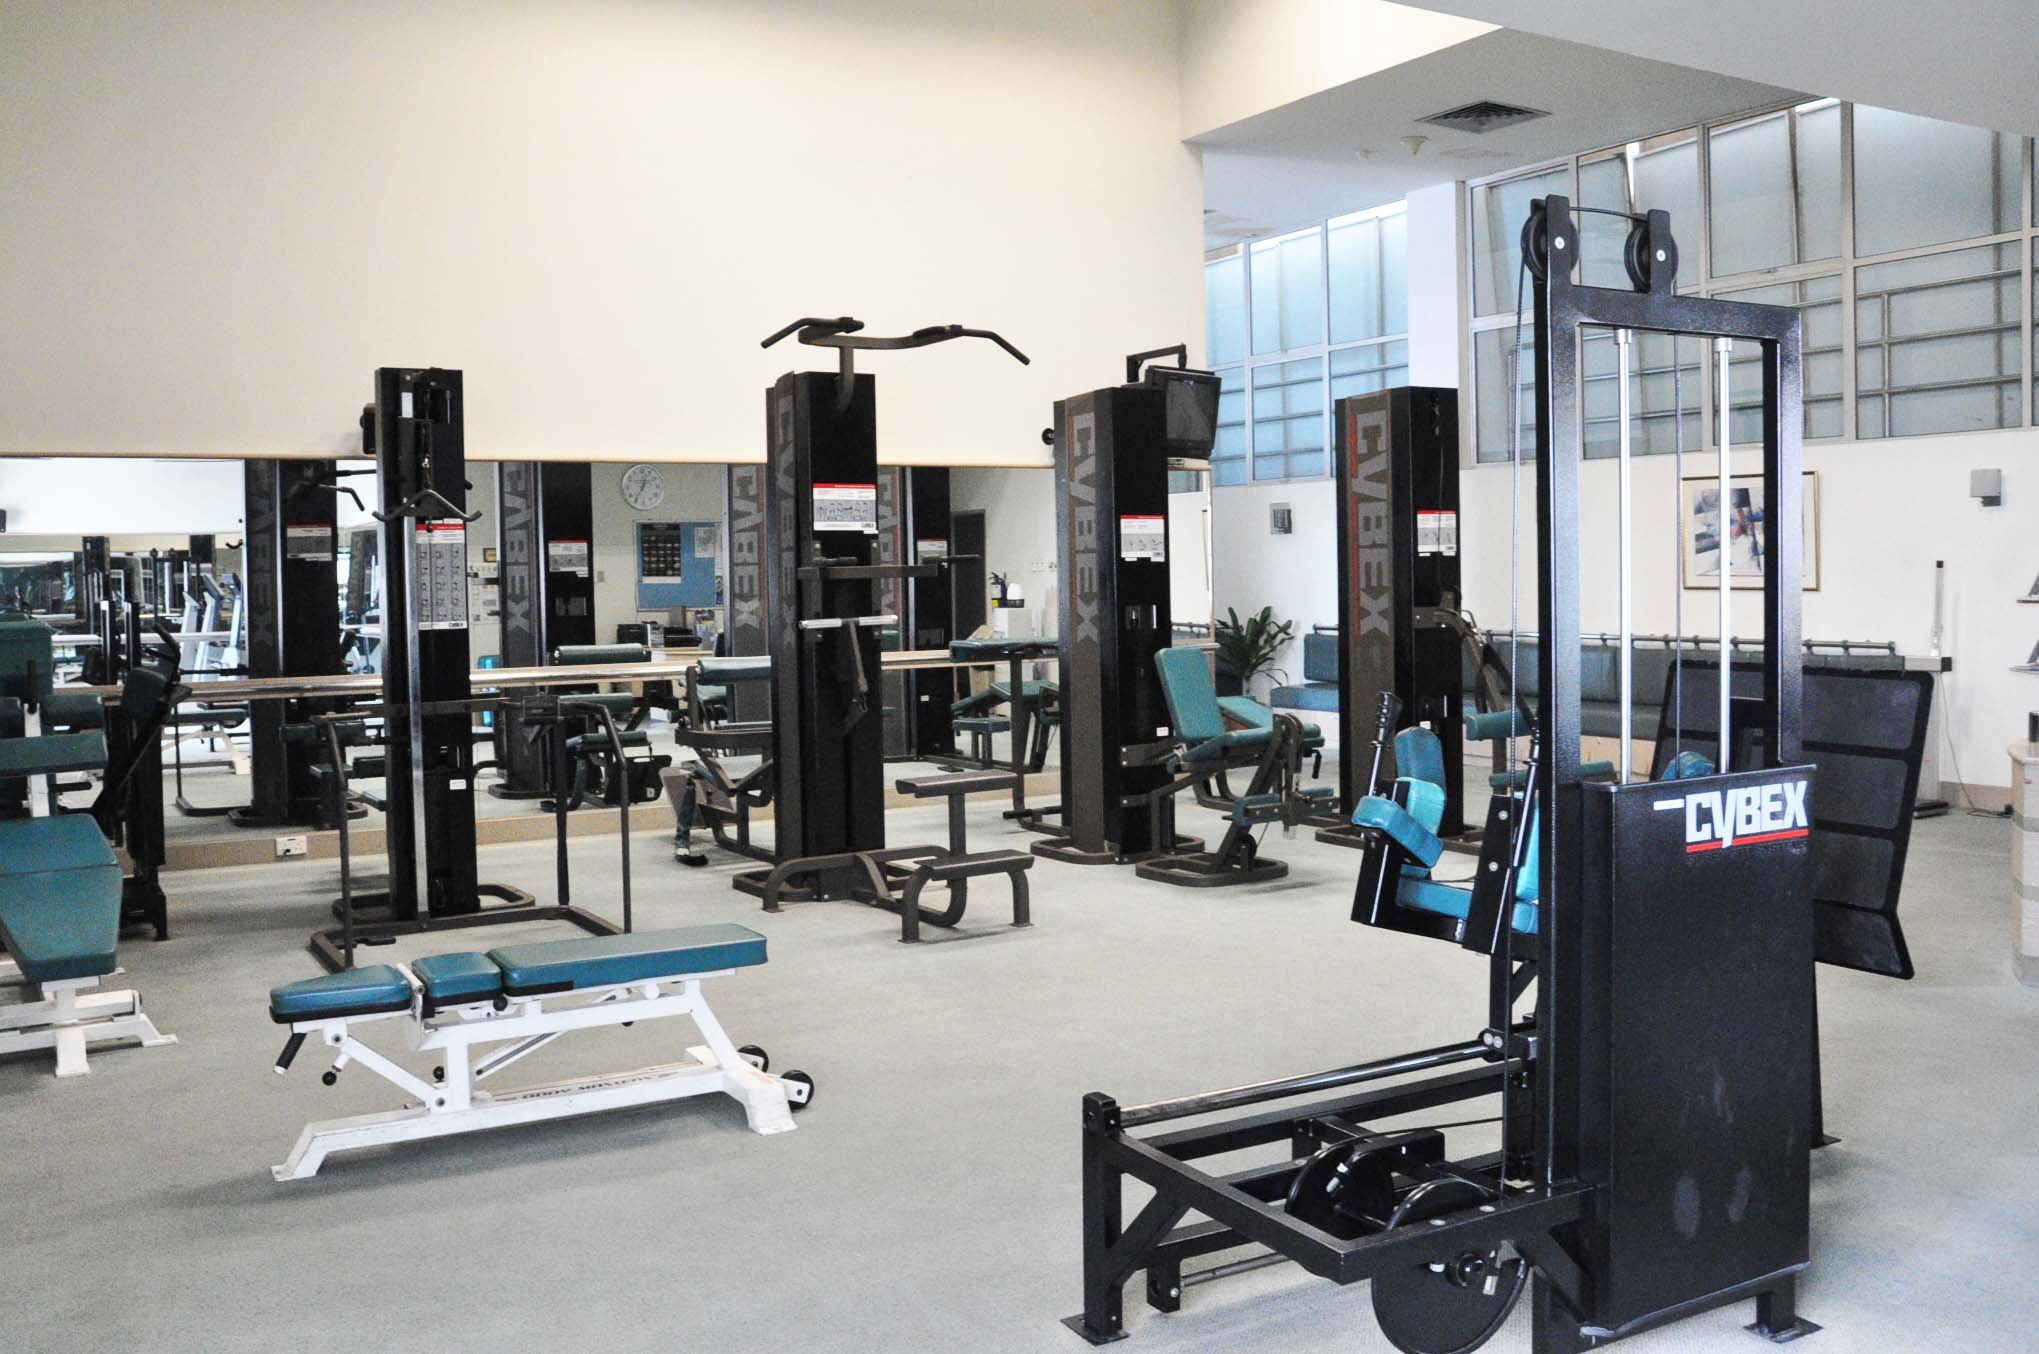 Gym Club Facilities